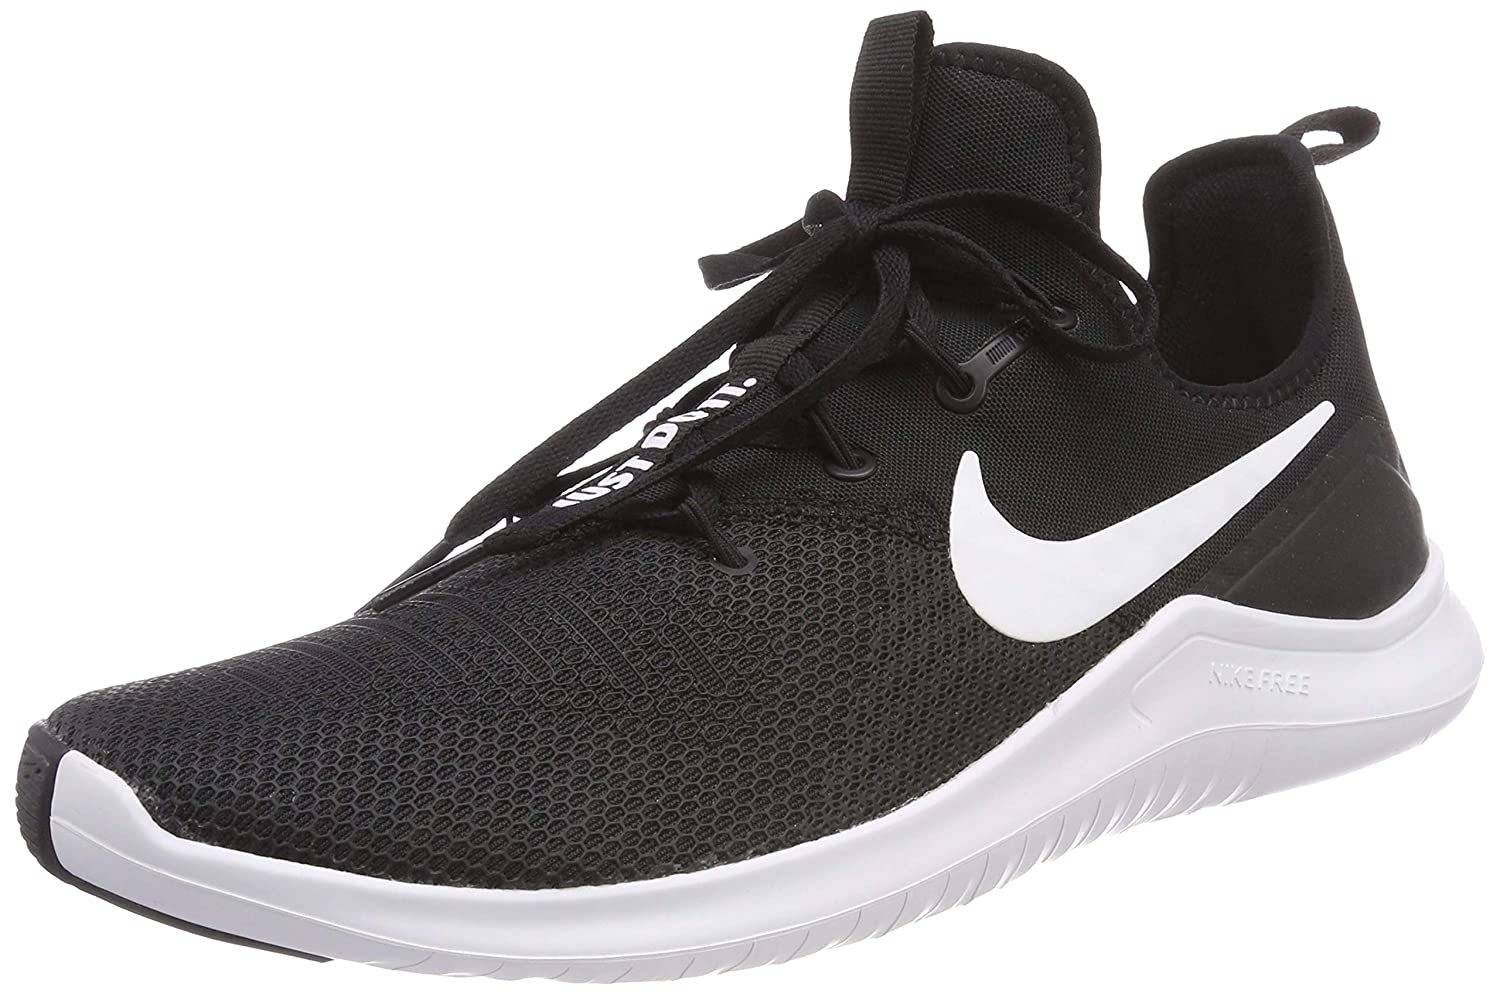 Nike Black Free Tr 8 Amp Training Sneakers From Finish Line